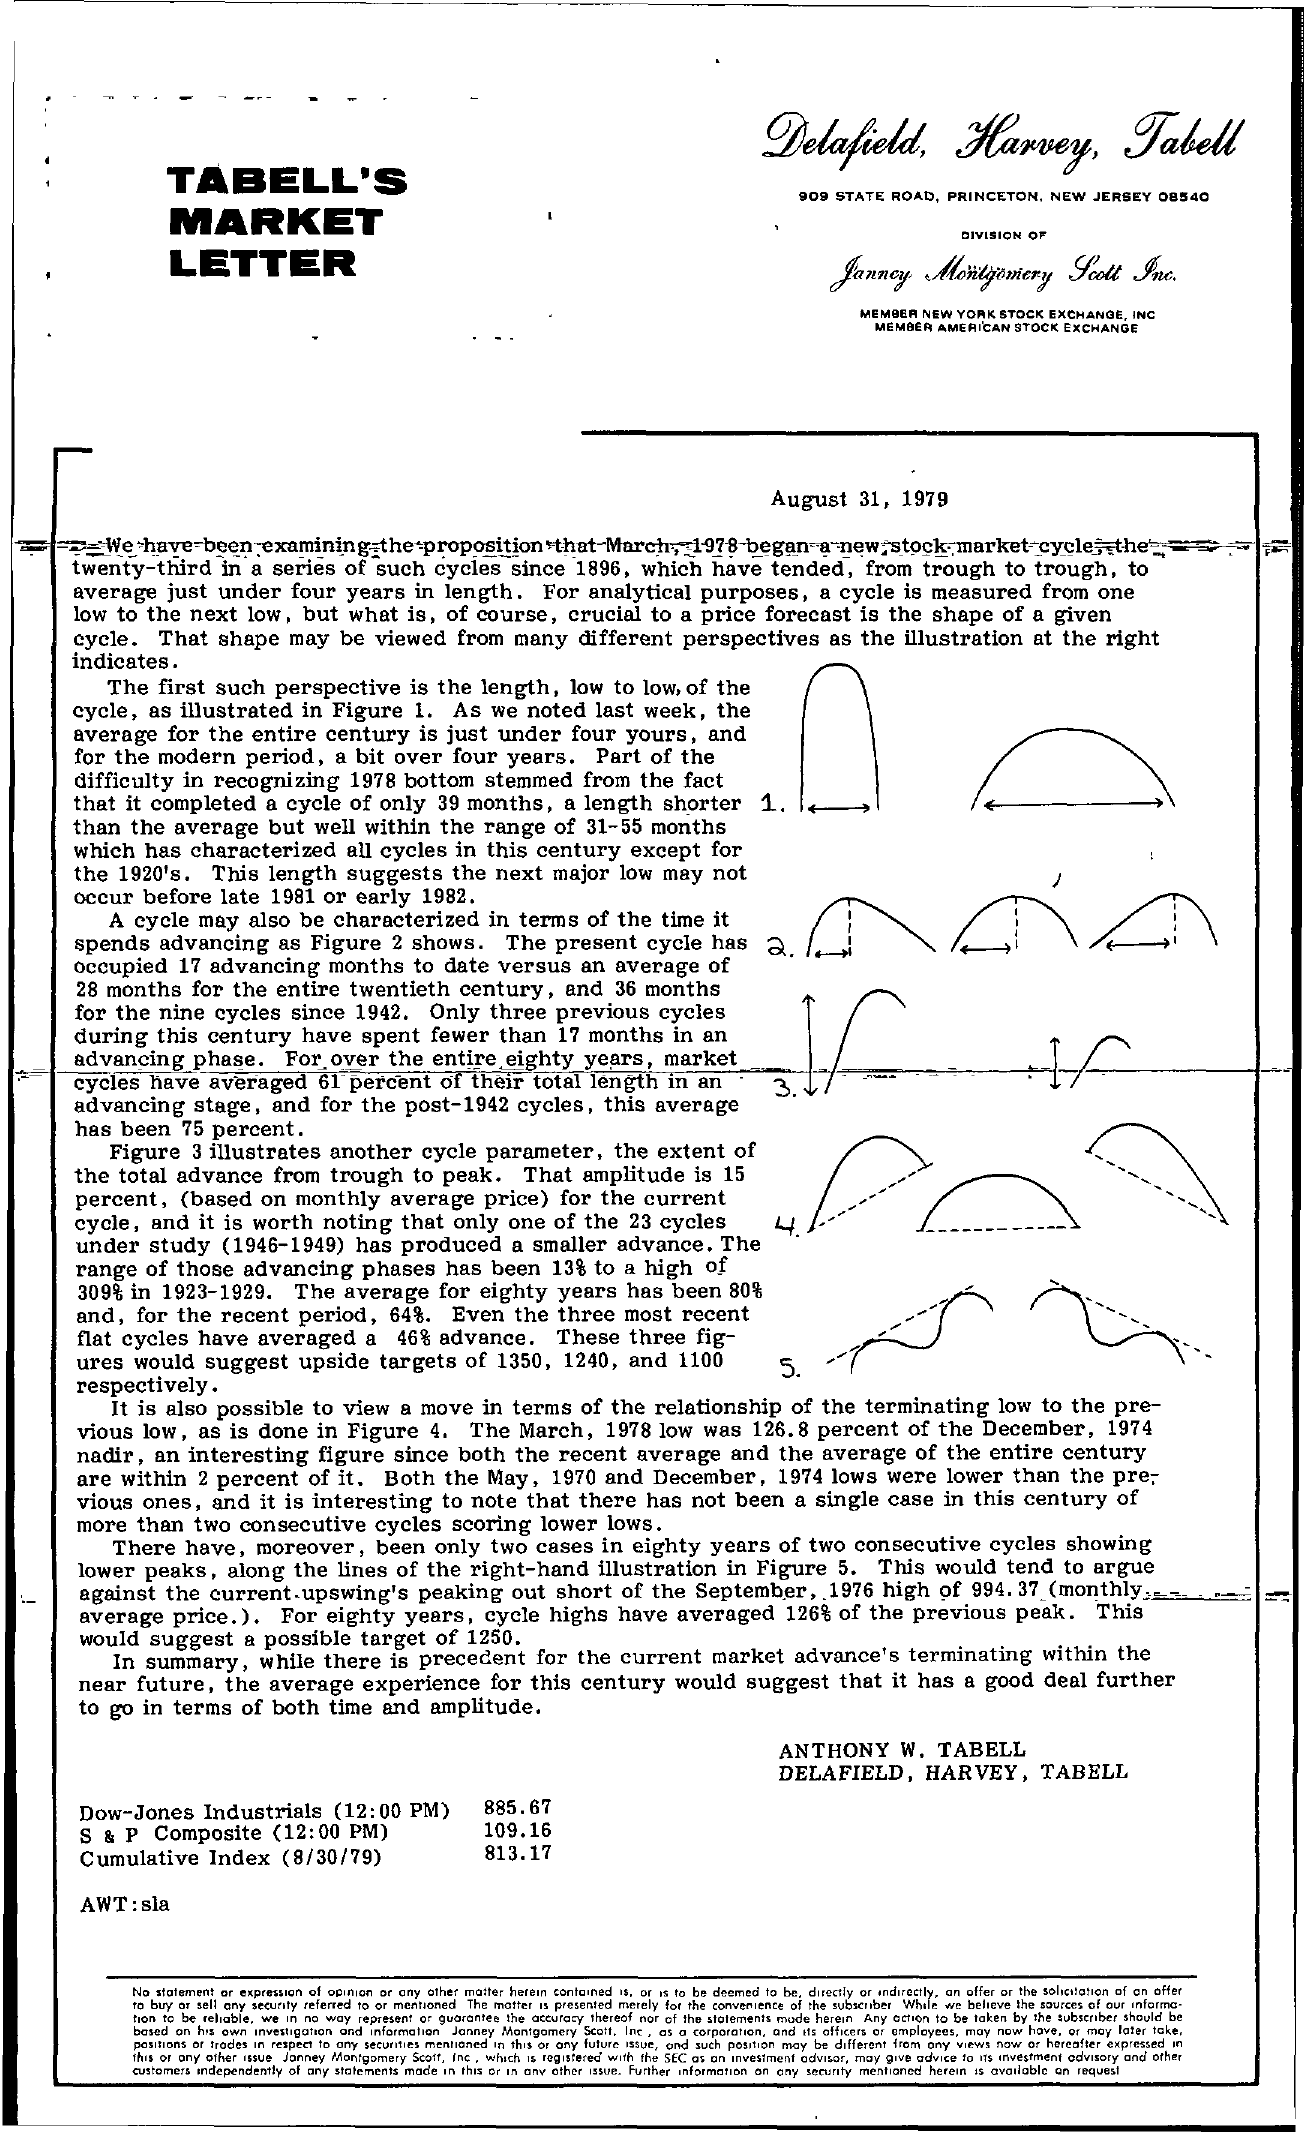 Tabell's Market Letter - August 31, 1979